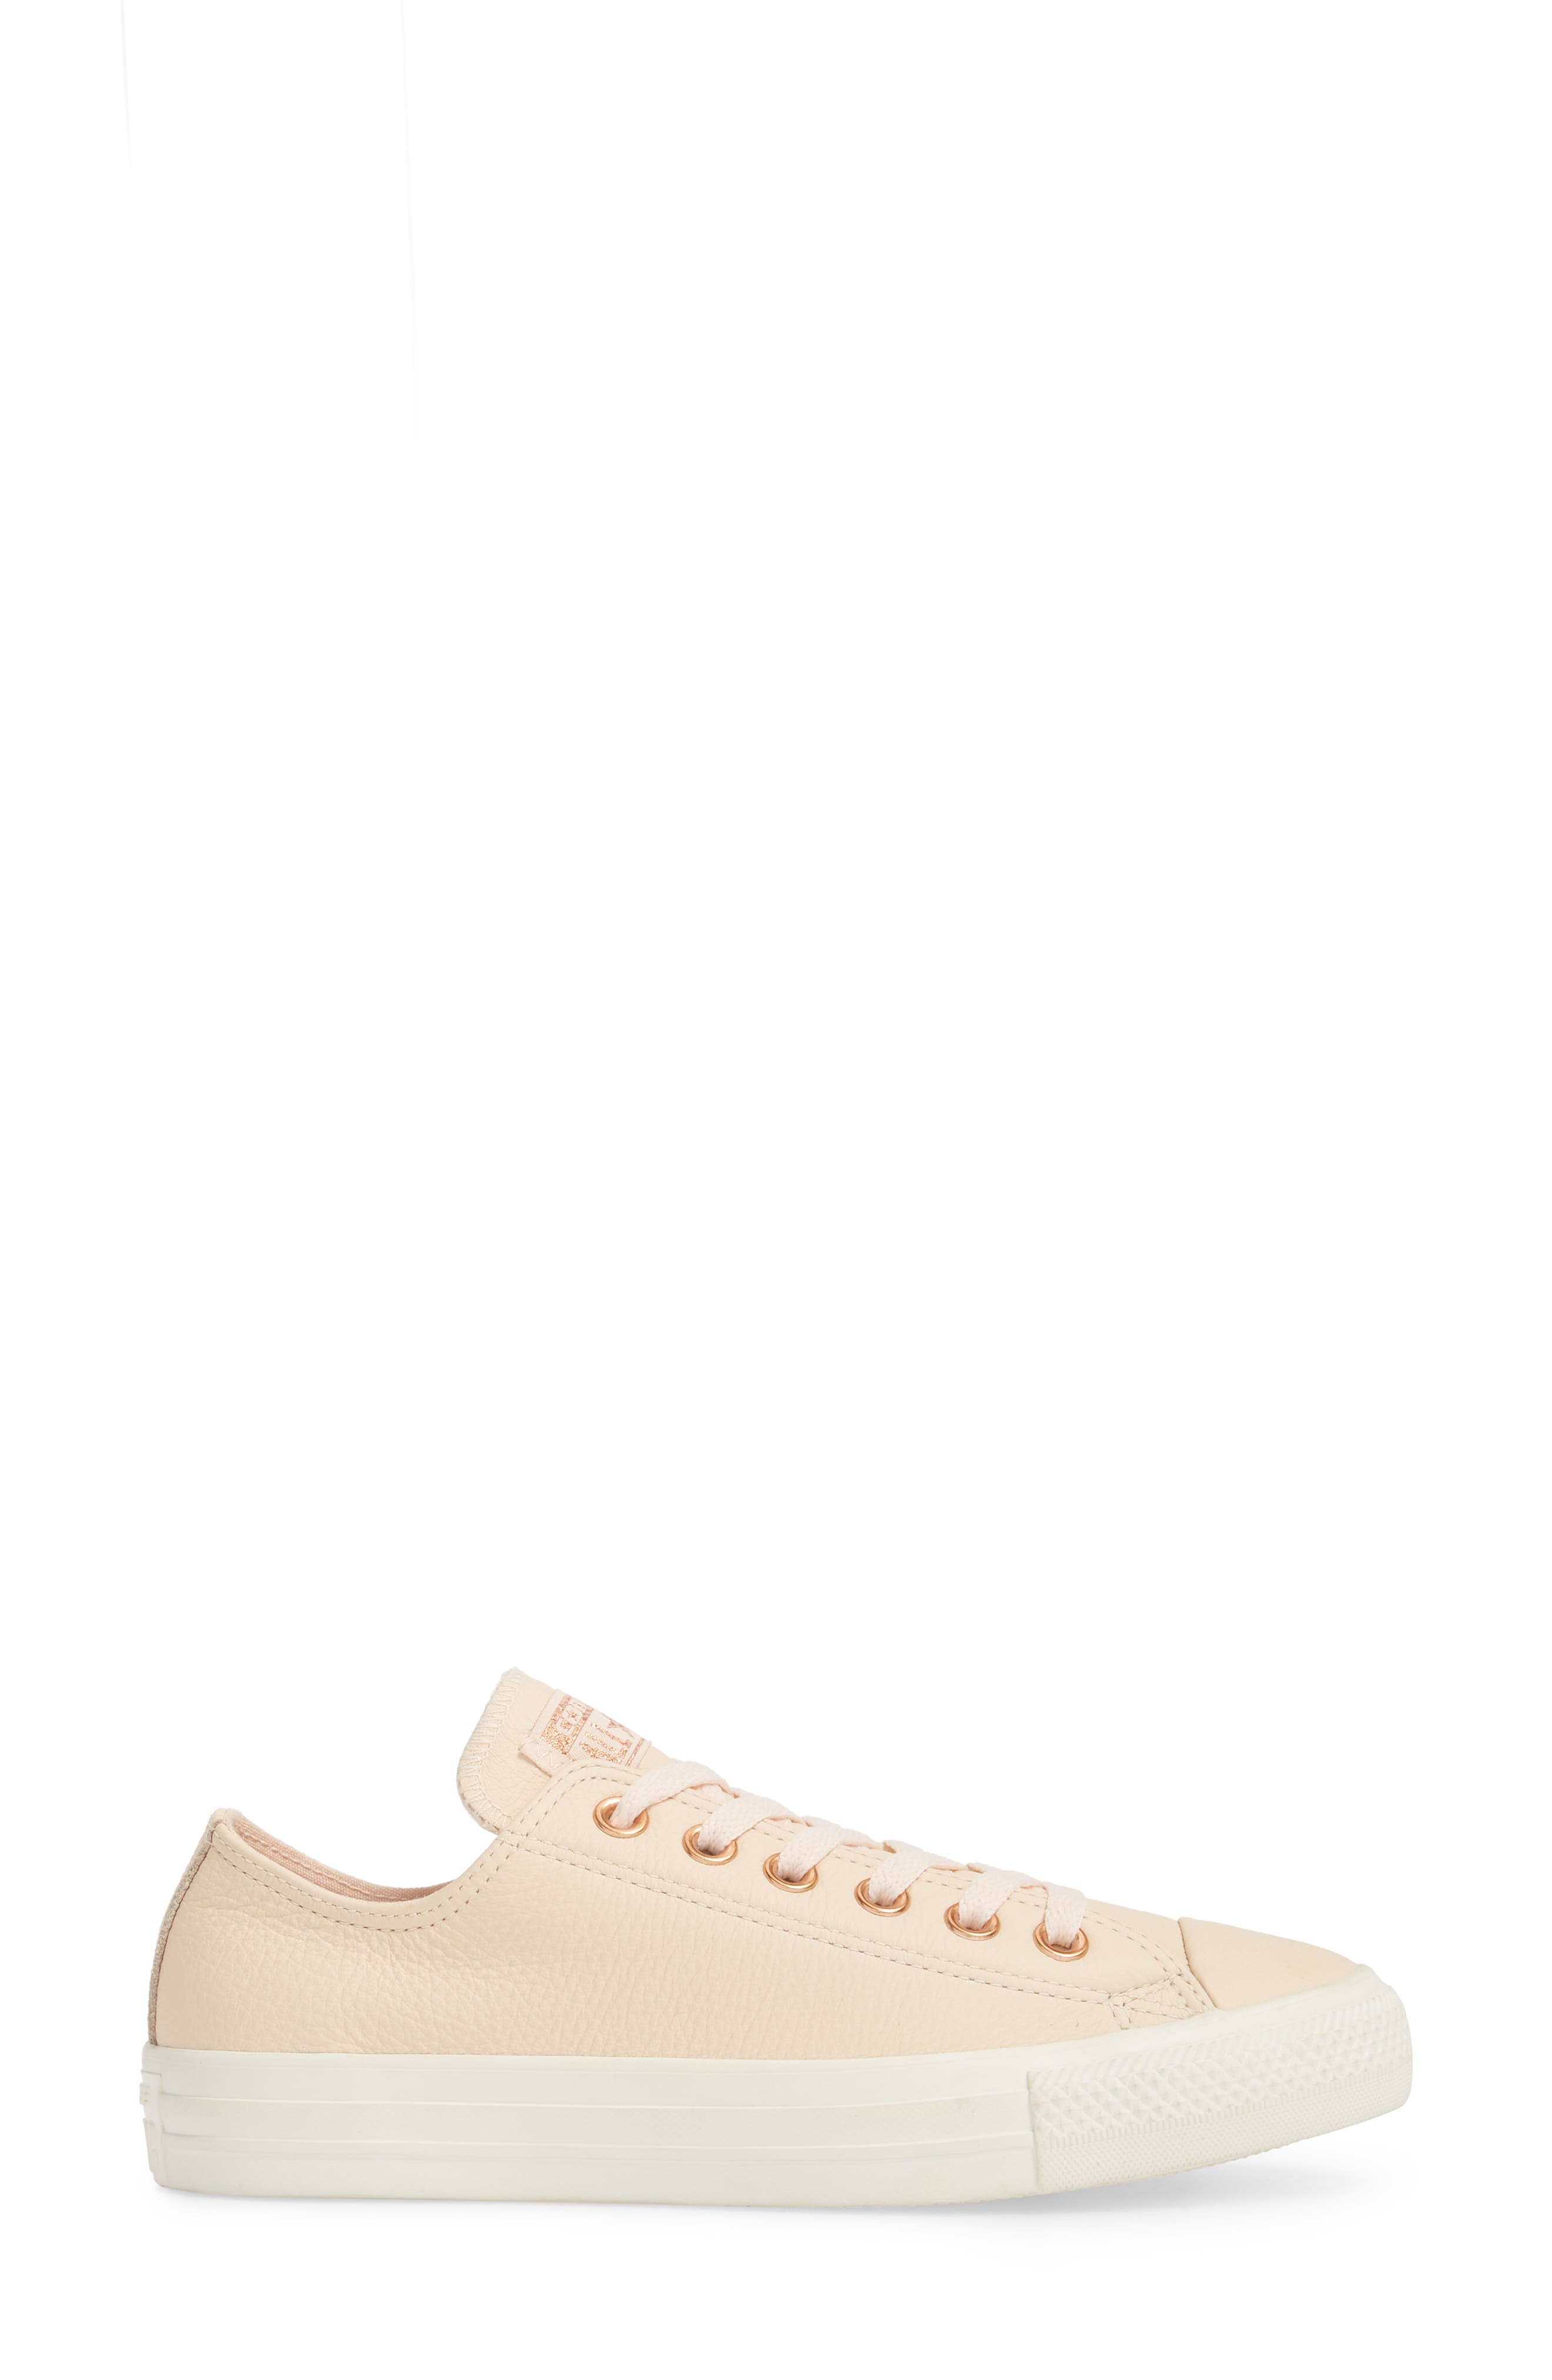 Chuck Taylor<sup>®</sup> All Star<sup>®</sup> Seasonal Ox Low Top Sneaker,                             Alternate thumbnail 3, color,                             Pastel Rose Leather